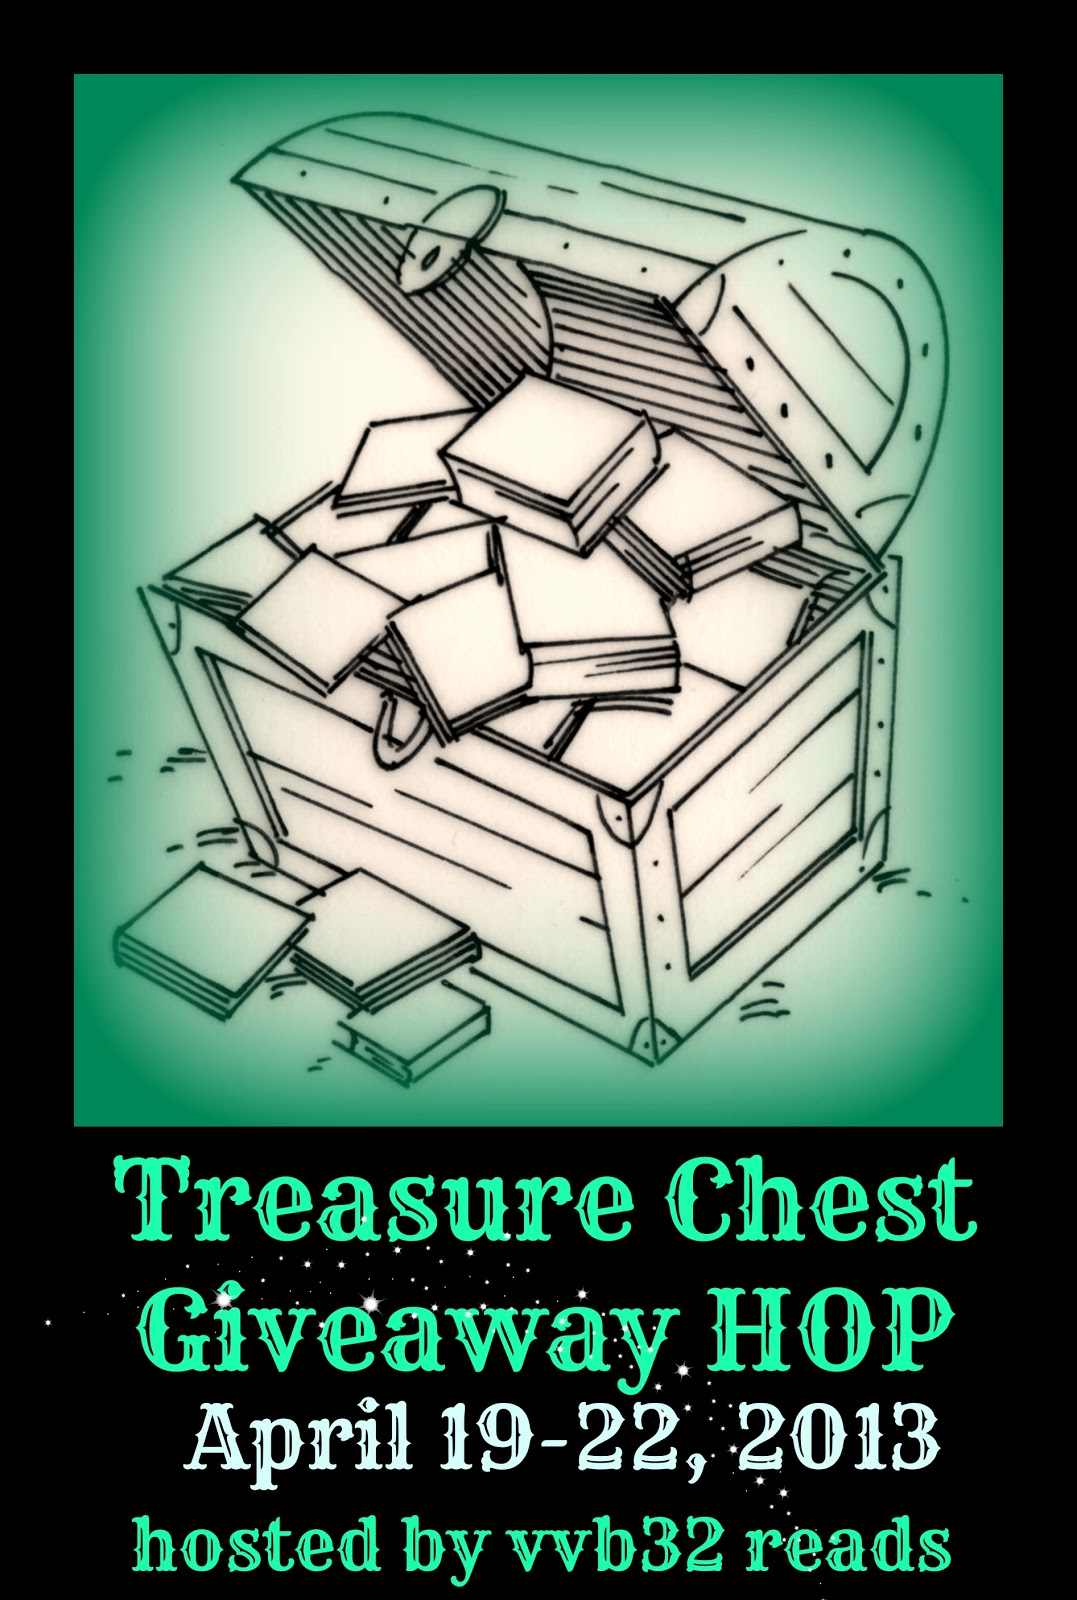 vvb32 reads: Treasure Chest Giveaway HOP